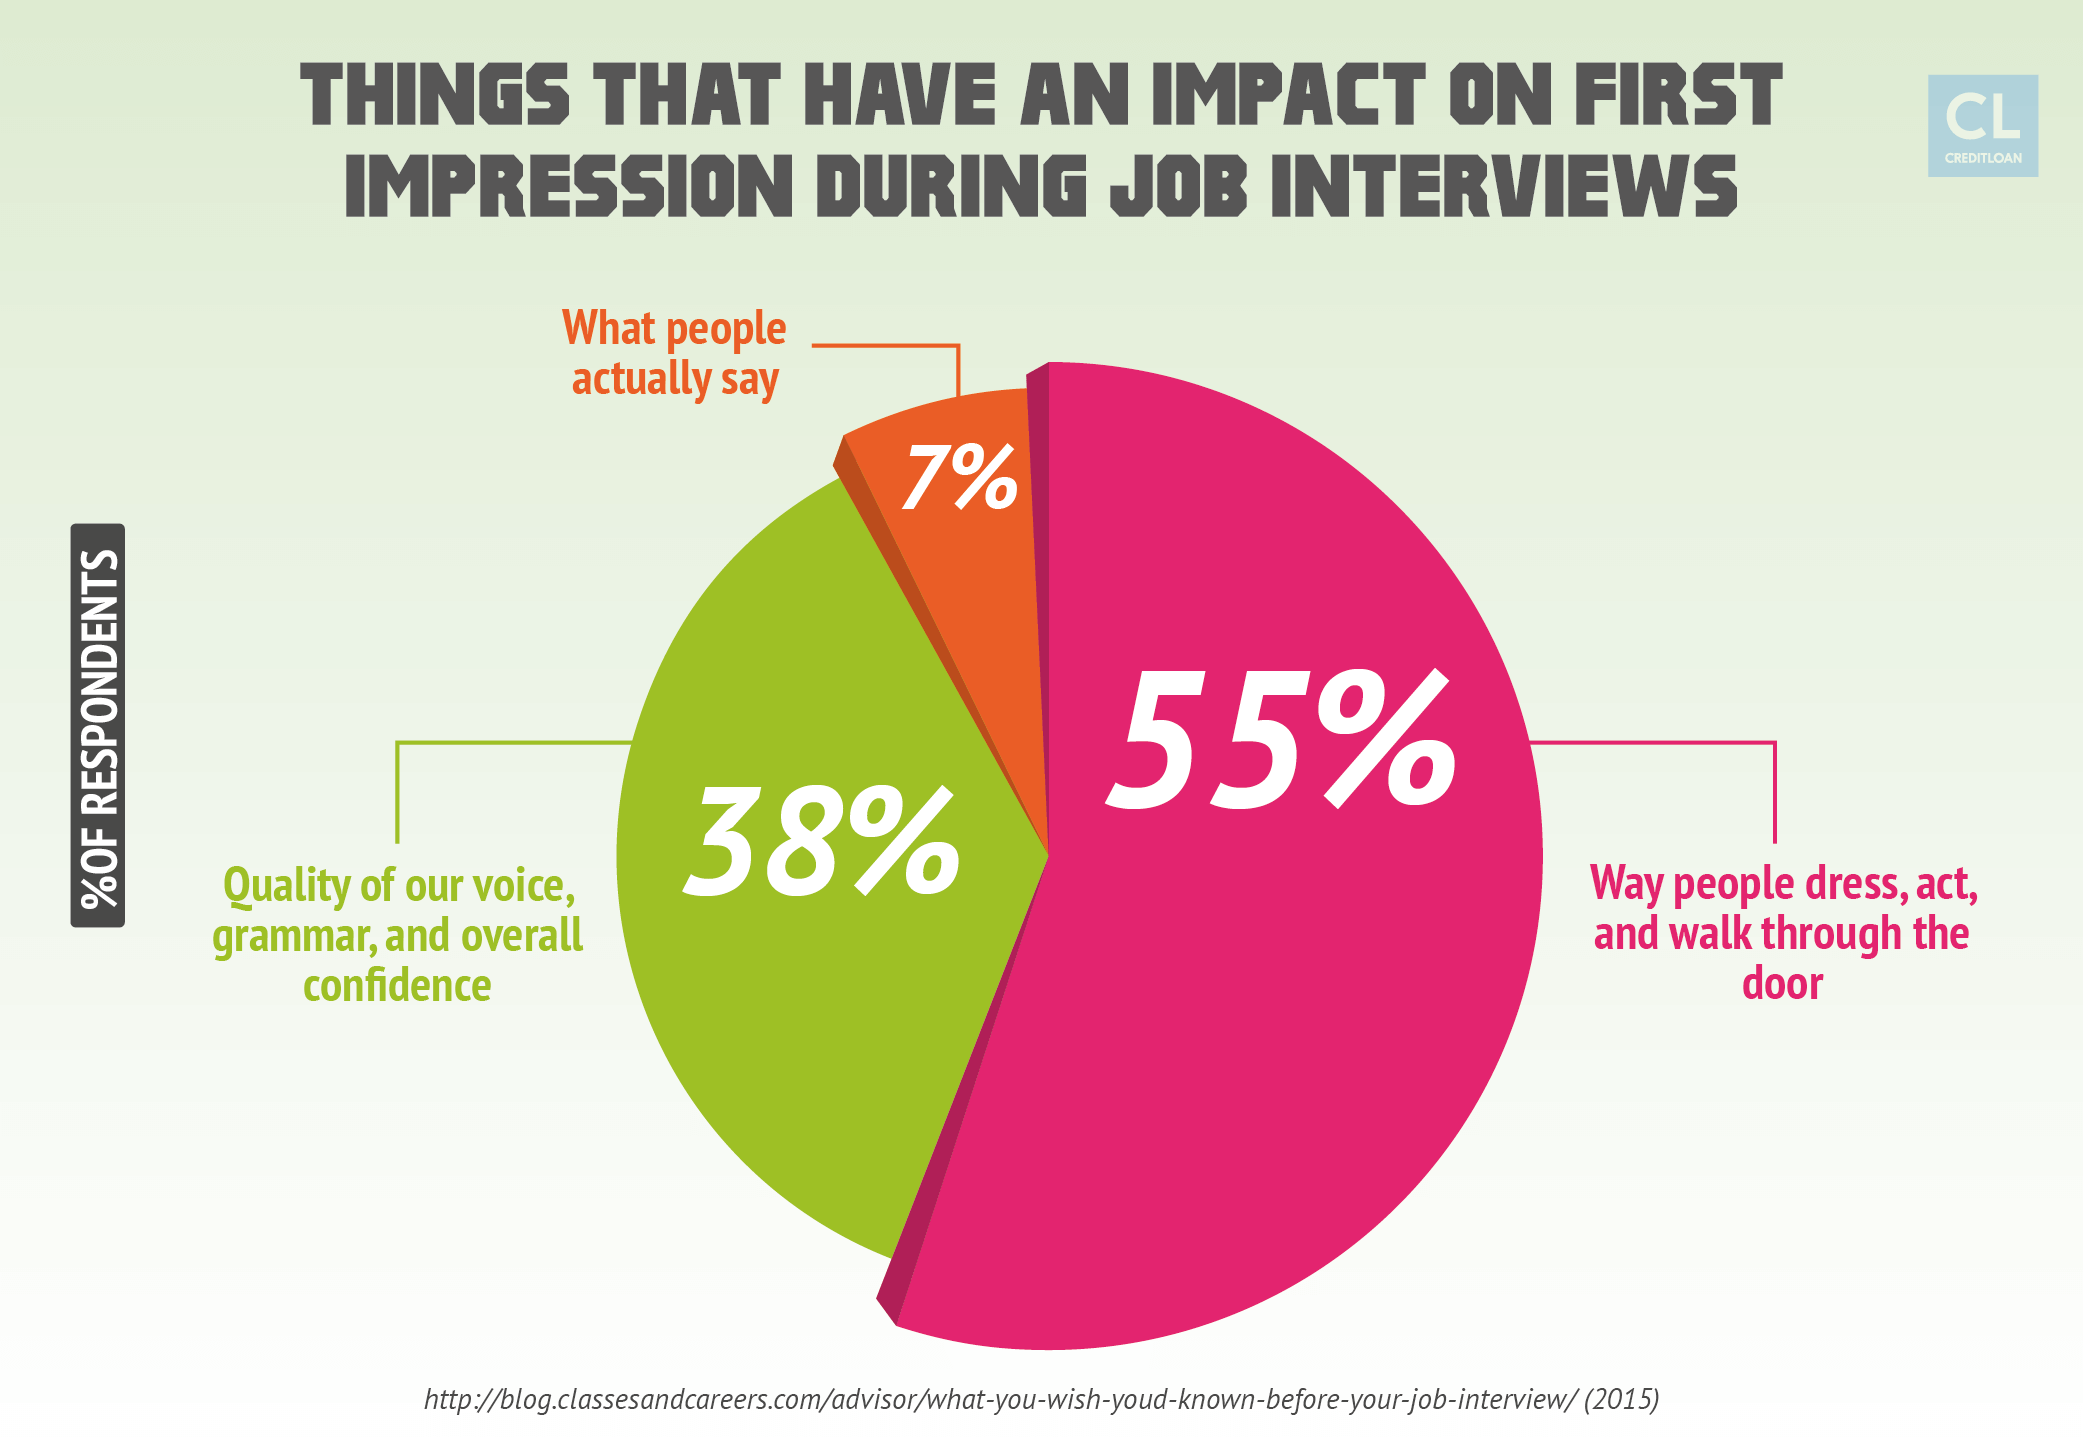 Things That Have An Impact on First Impression During Job Interviews